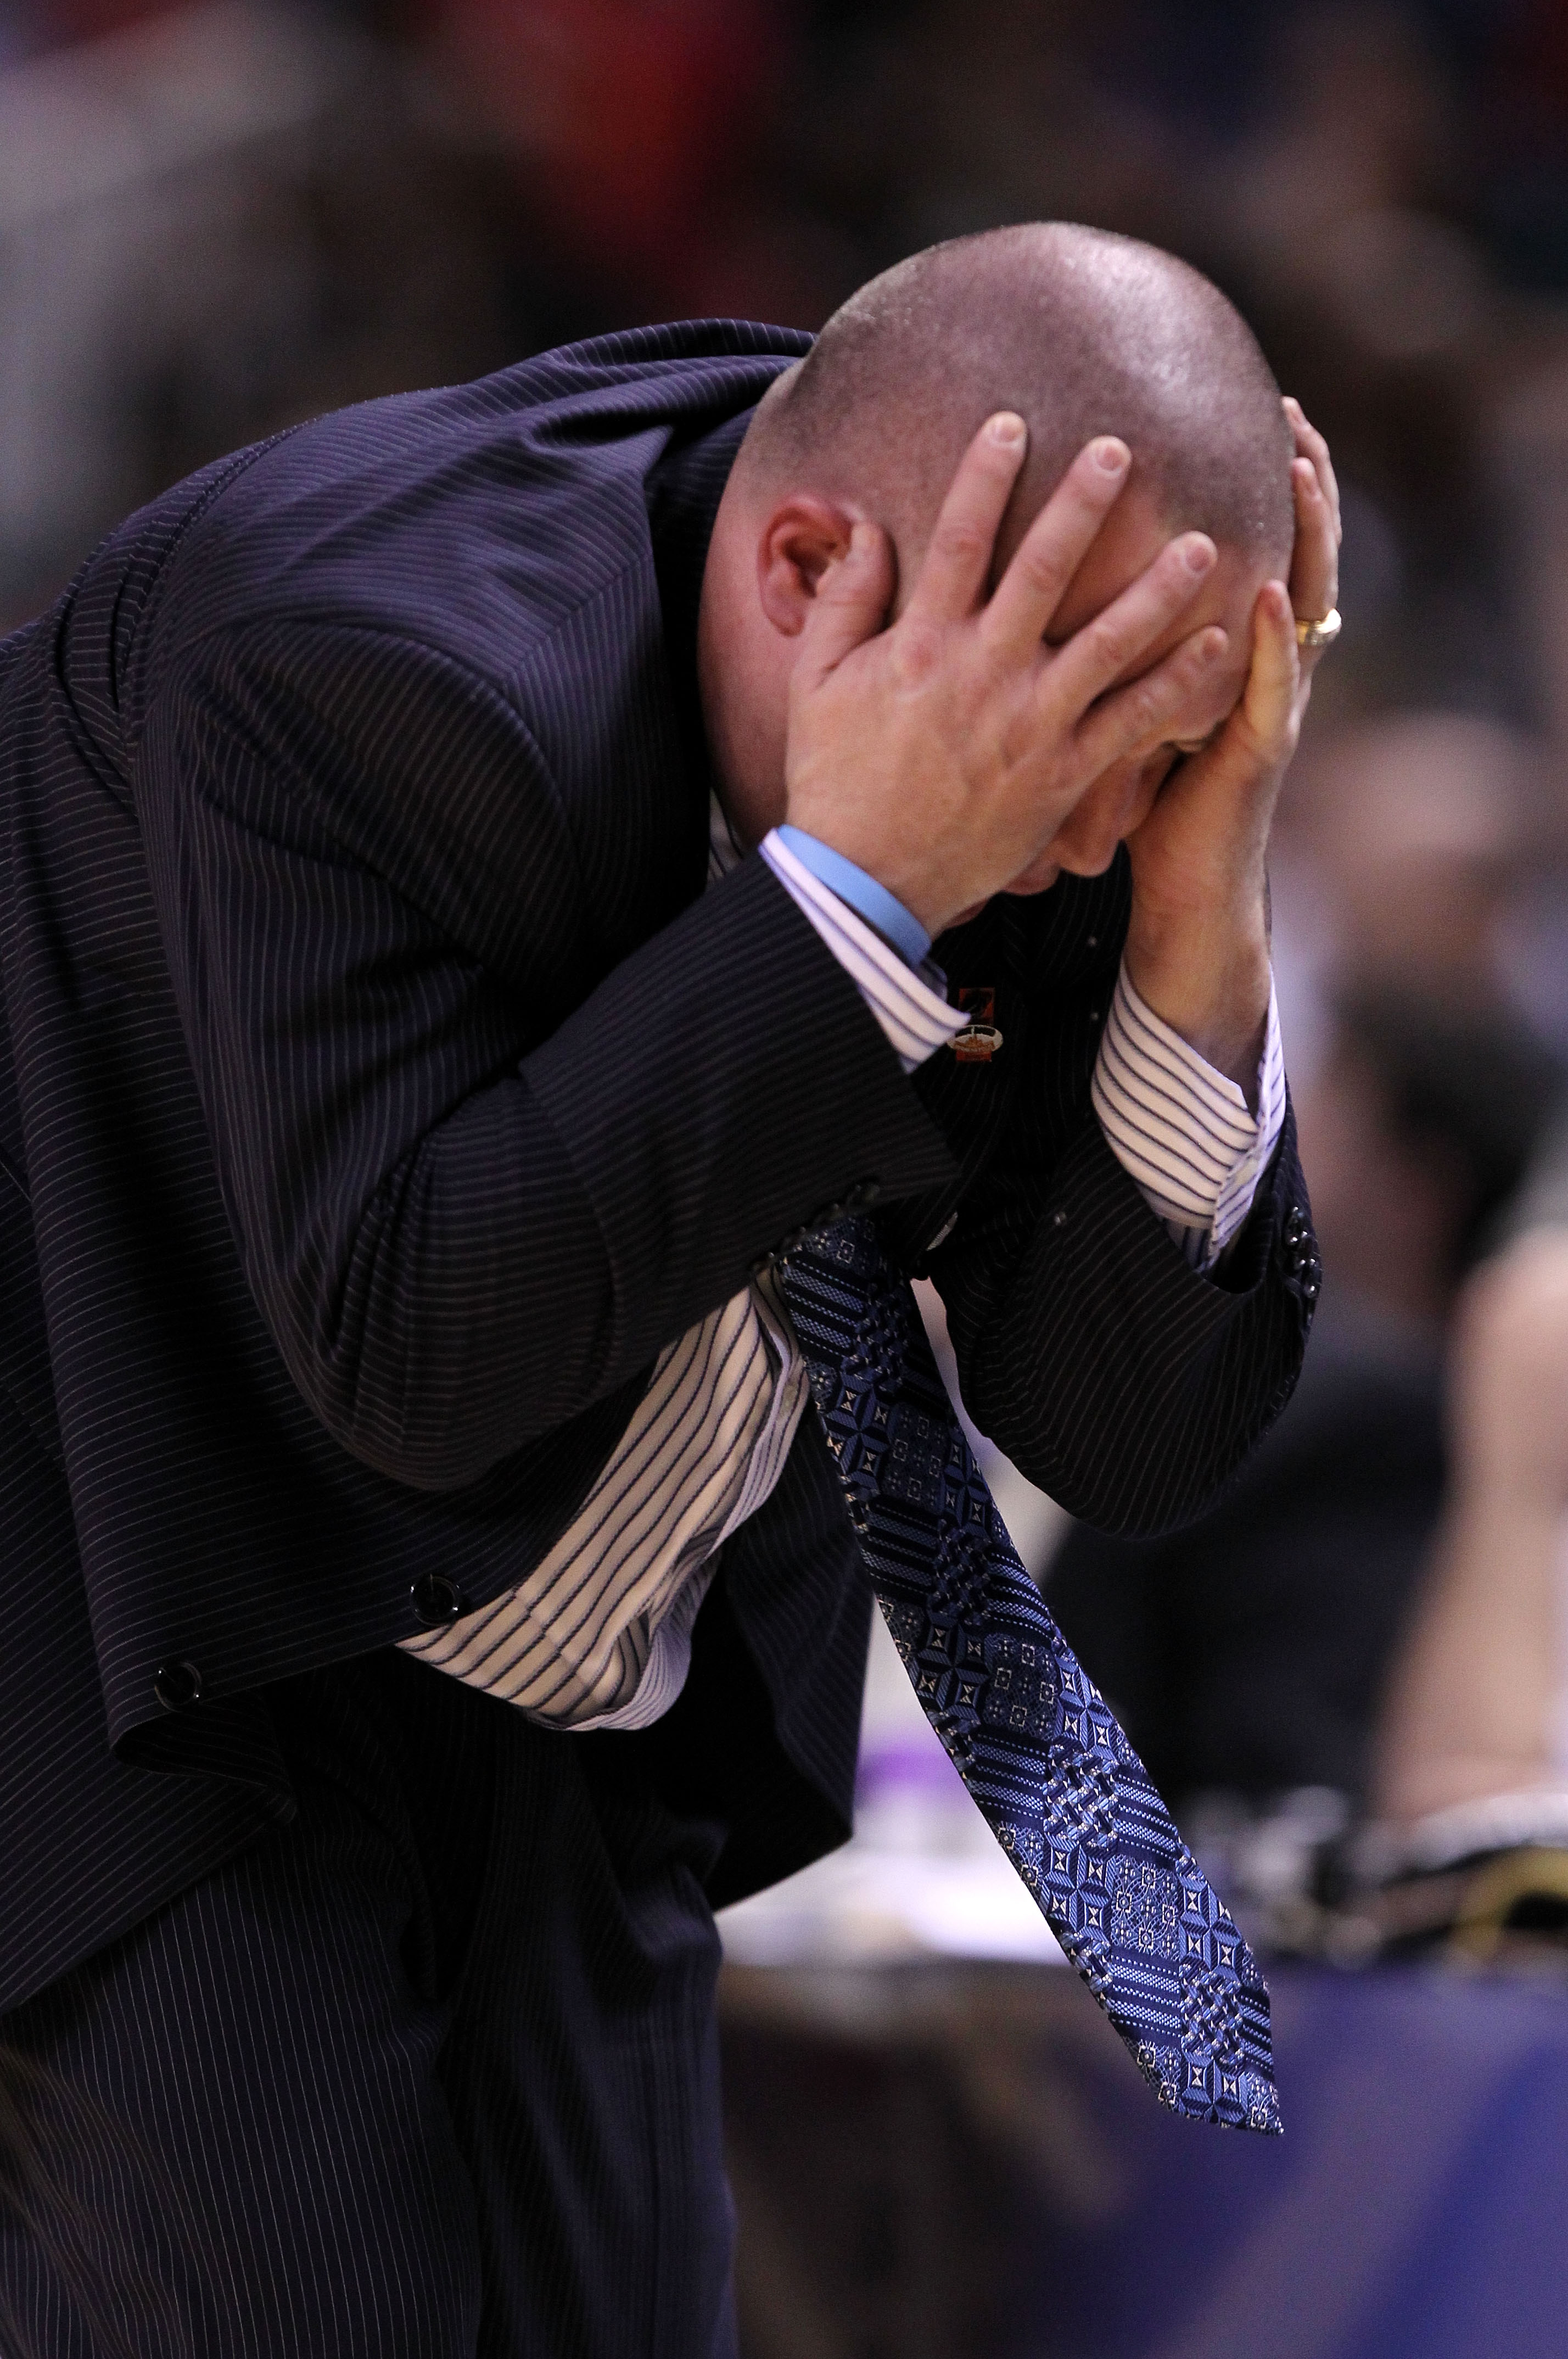 SAN JOSE, CA - MARCH 18:  Head coach Buzz Williams of the Marquette Golden Eagles reacts to a play during their game against the Washington Huskies in the first round of the 2010 NCAA men's basketball tournament at HP Pavilion on March 18, 2010 in San Jos